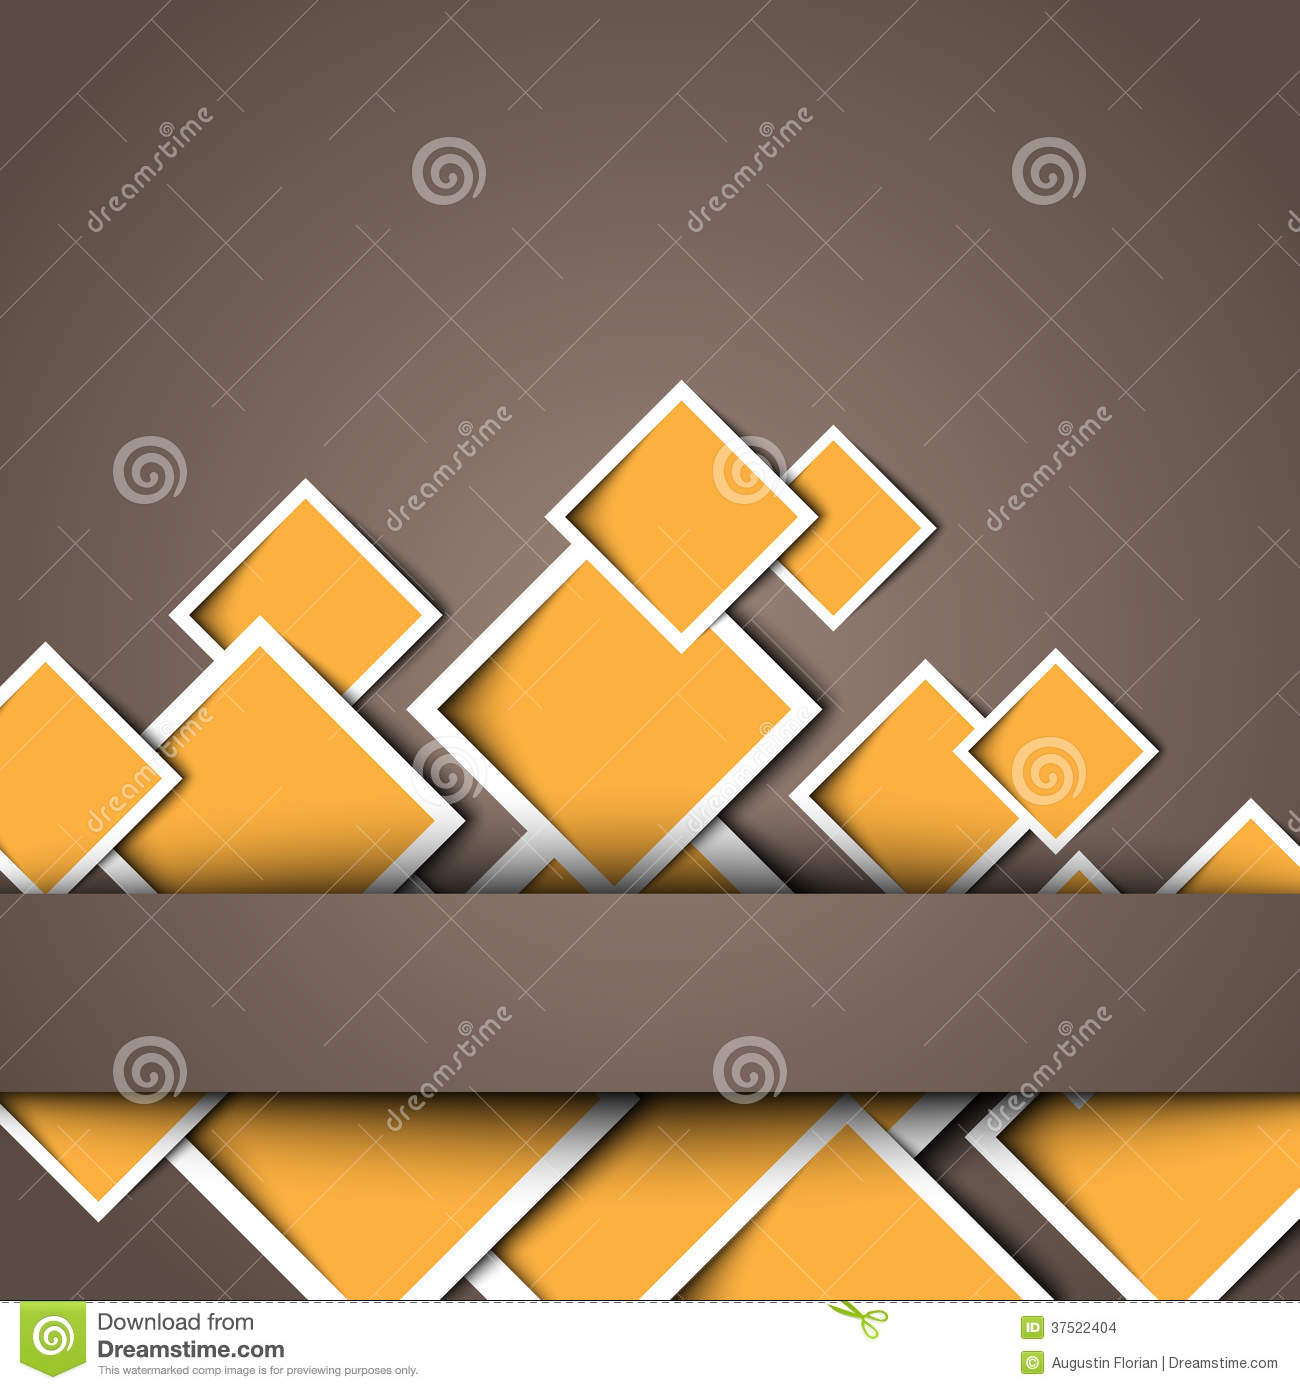 3d square design template stock vector illustration of frame 37522404